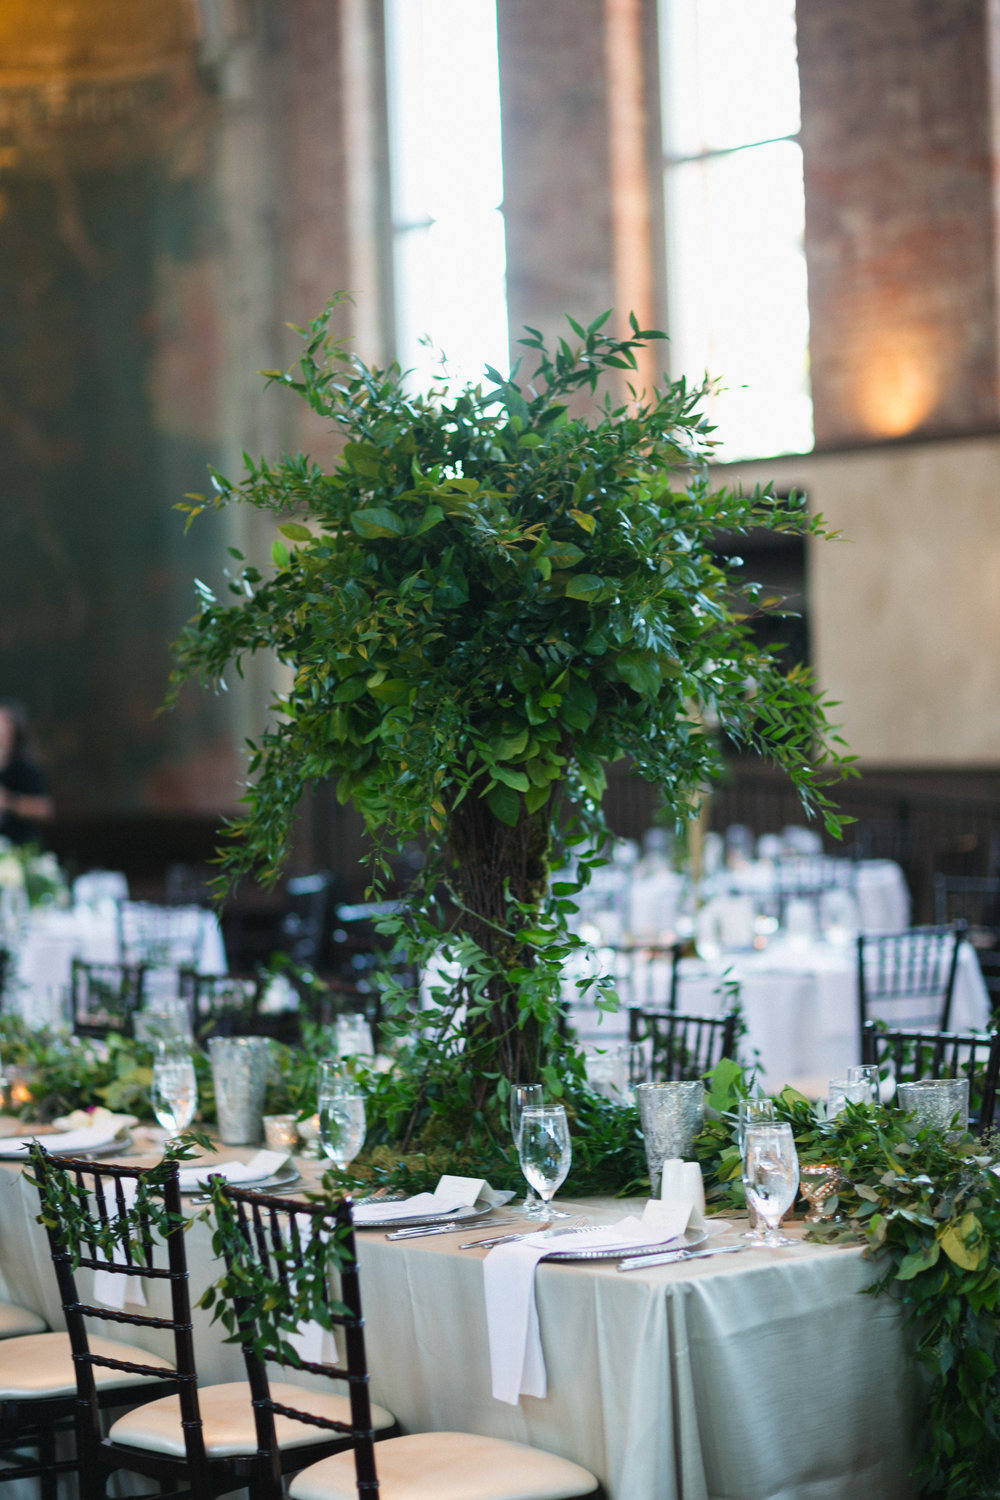 Courtenay Lambert Florals and Event Design Wedding Monastery Event Center Cincinnati OH, Robin McKerrell Photography, i-do Weddings & Events